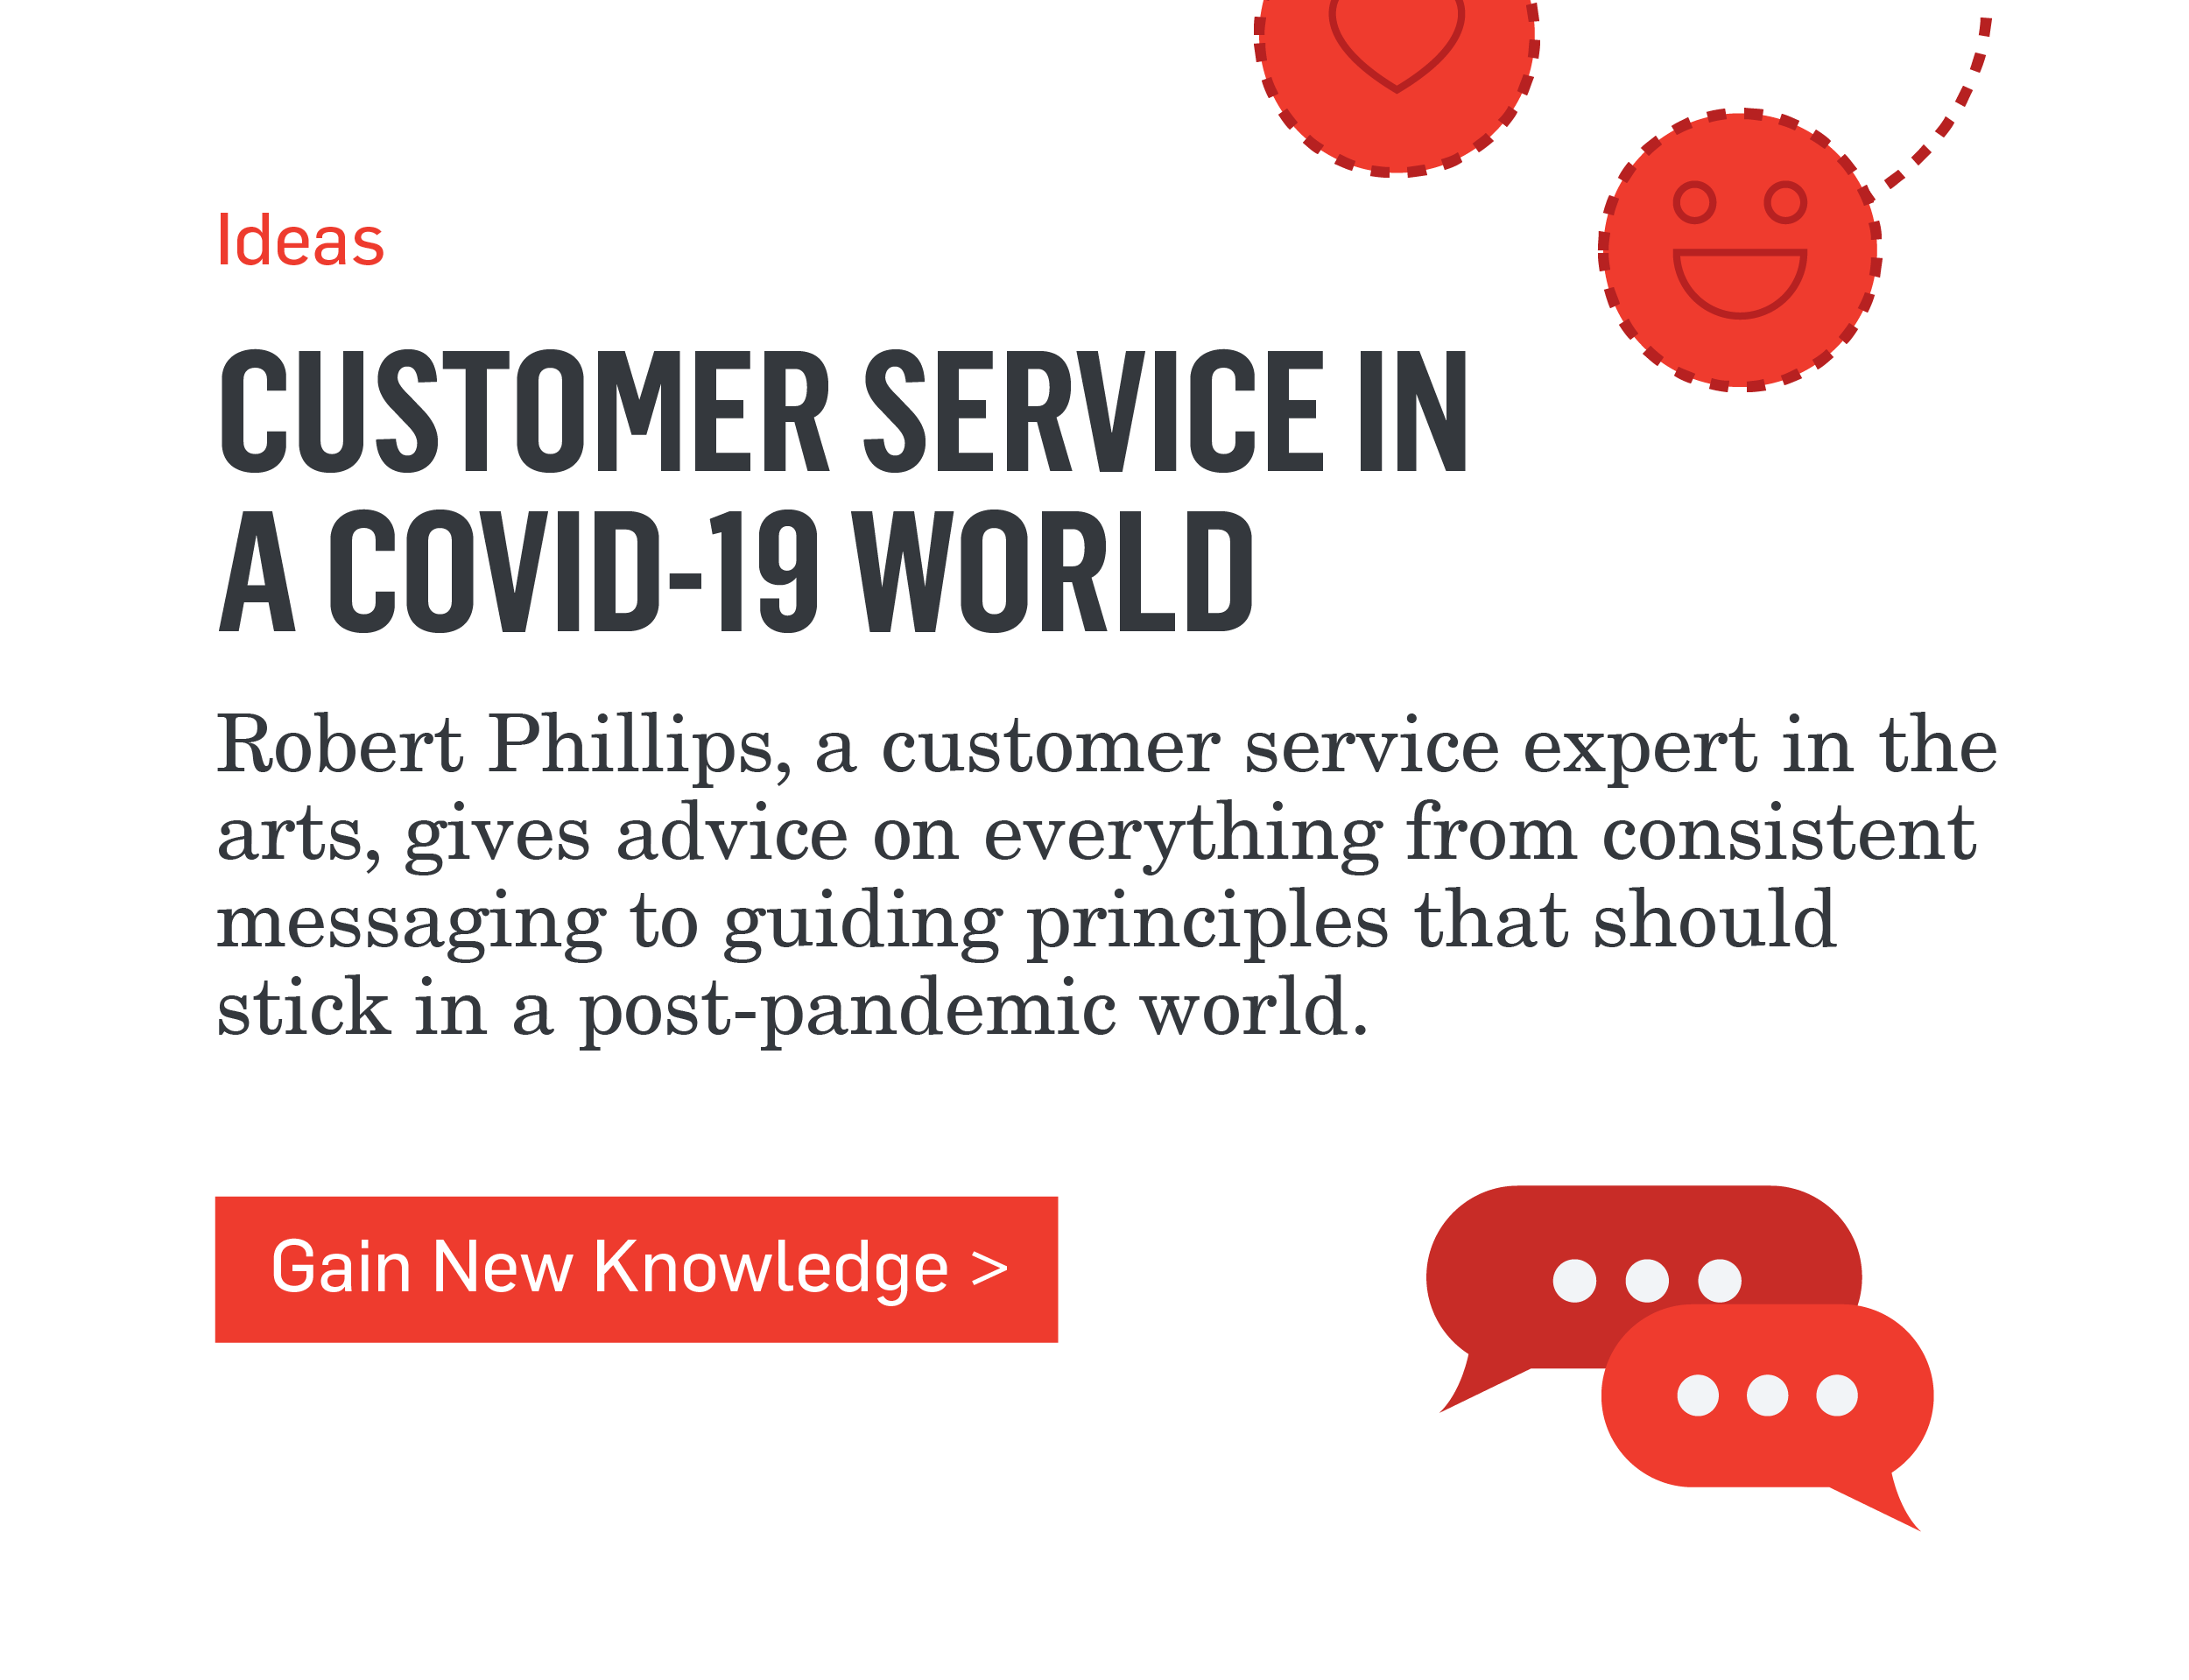 Ideas - CUSTOMER SERVICE IN A COVID-19 WORLD - Robert Phillips, a customer service expert in the arts, gives advice on everything from consistent messaging to guiding principles that should stick in a post-pandemic world. >>>Gain New Knowledge>>>